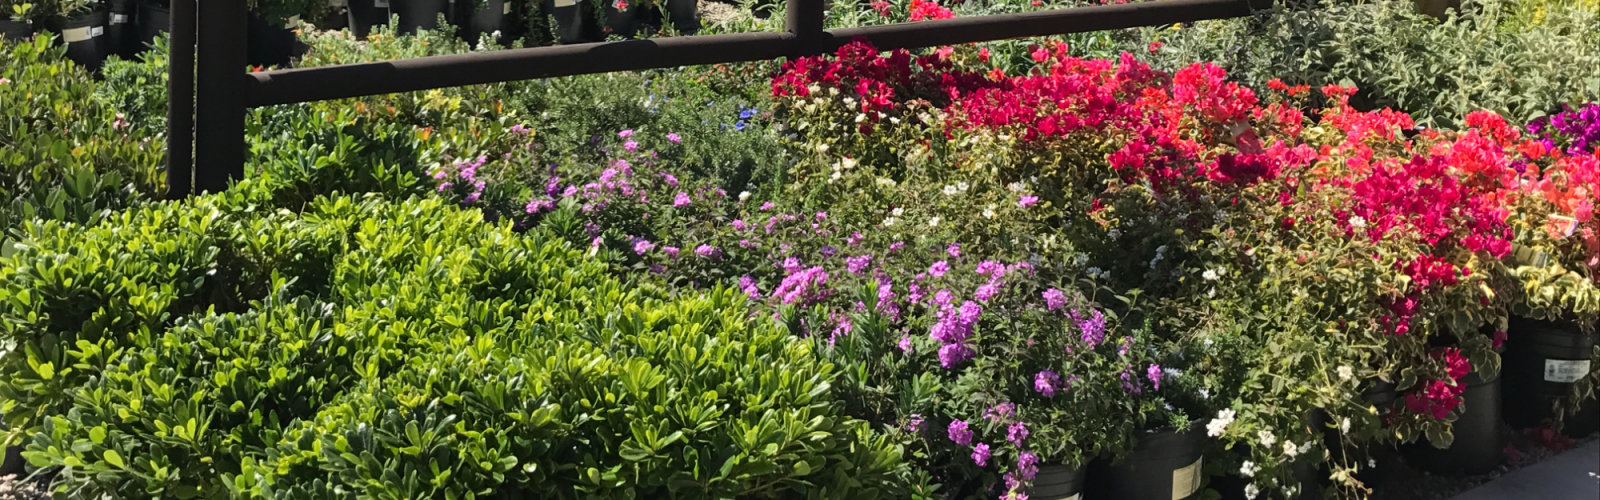 a close up of a flower garden